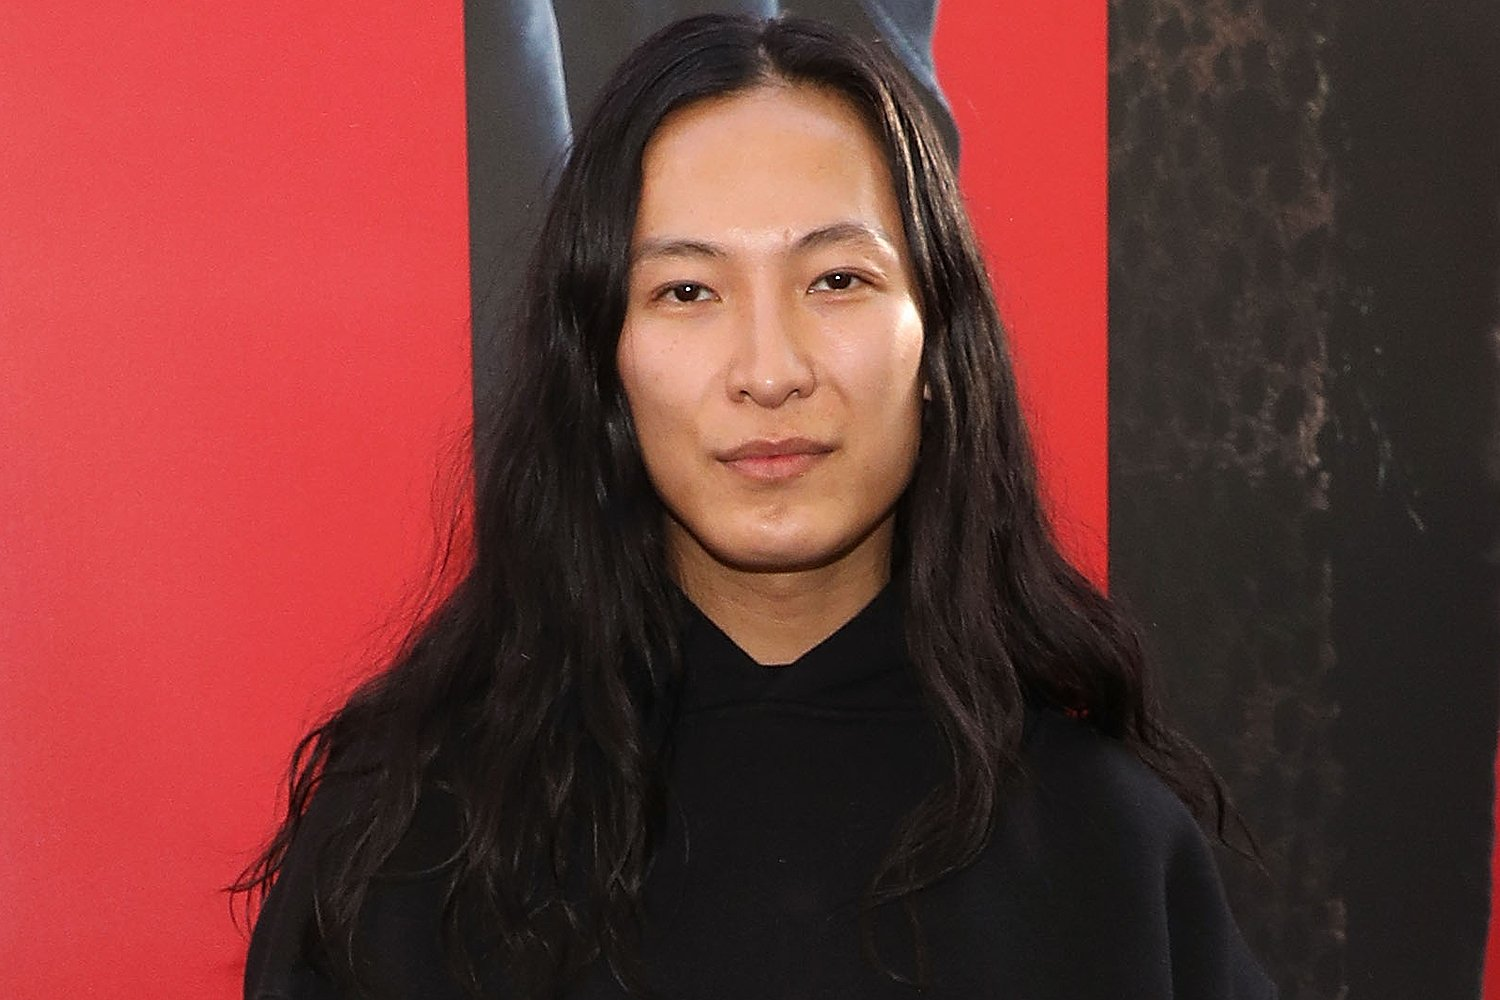 Alexander Wang Accused Of Sexual Assault By Multiple People In